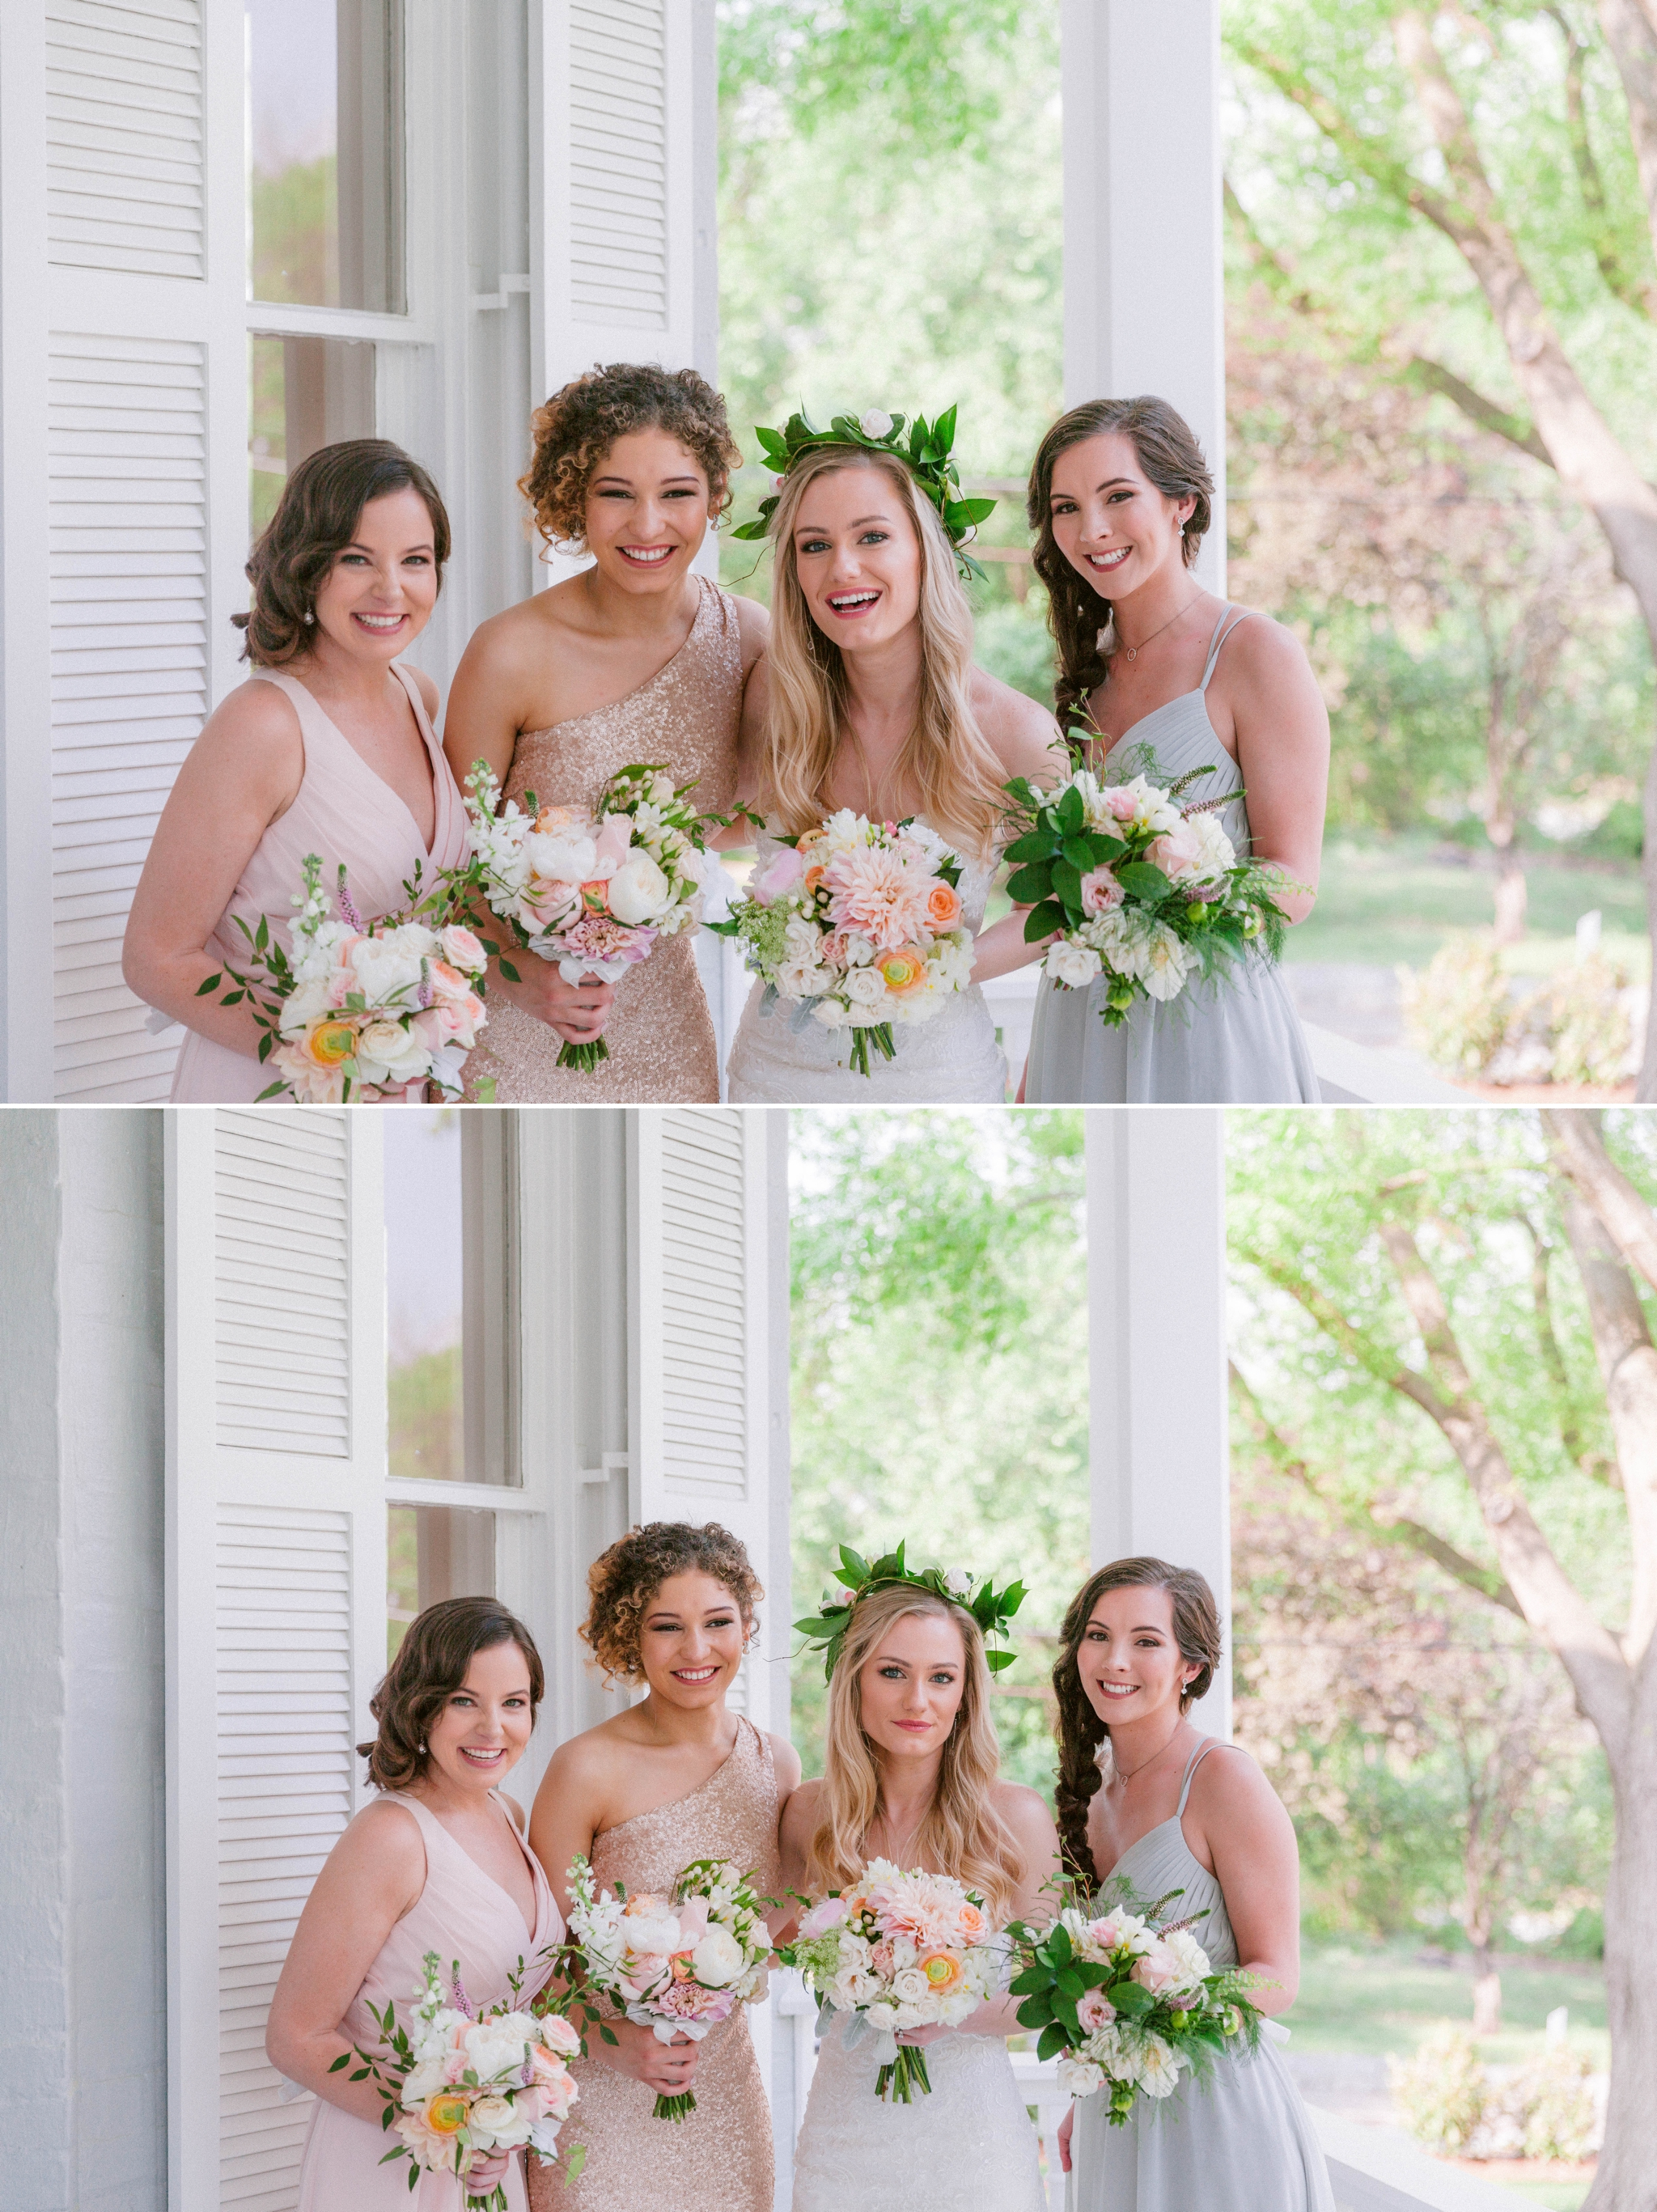 Bride + bridesmaids portraits in an all white room at a luxury estate with natural light before the ceremony sitting on a chair for an editorial shot - Bride is wearing a Hawaiian Flower Crown and a cathedral veil in a Wedding Gown by Stella York - Honolulu Oahu Hawaii Fine Art Wedding Photographer - Johanna Dye Photography - edited with for the love of film presets by jose villa